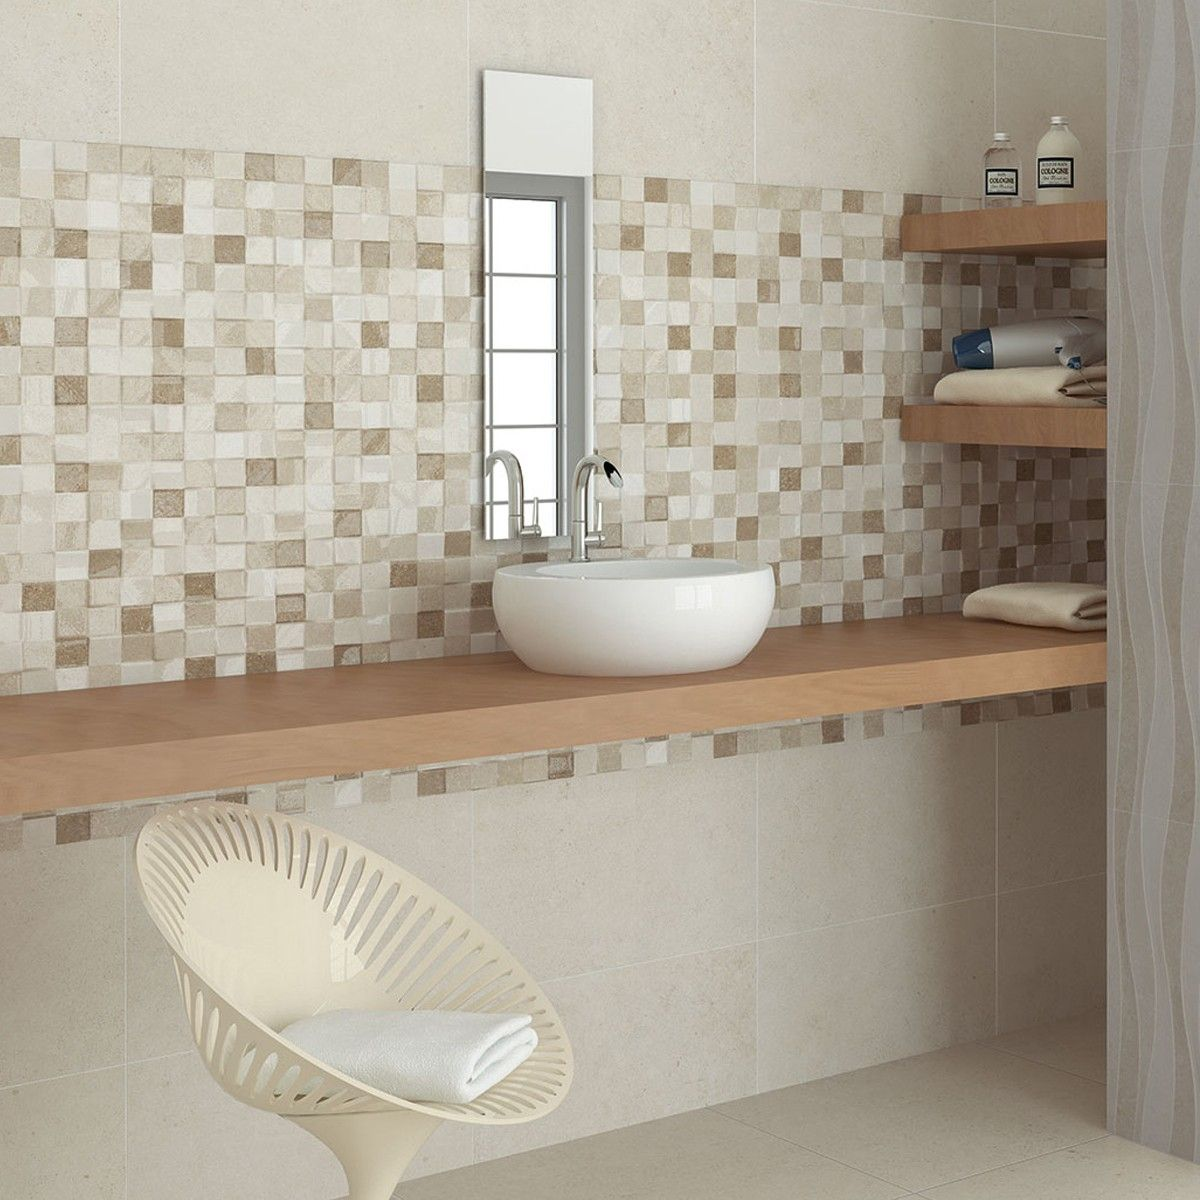 55x33 3 Adelaide Beige Mosaic Bathroom Wall Tiles Wall: mosaic tile wall designs